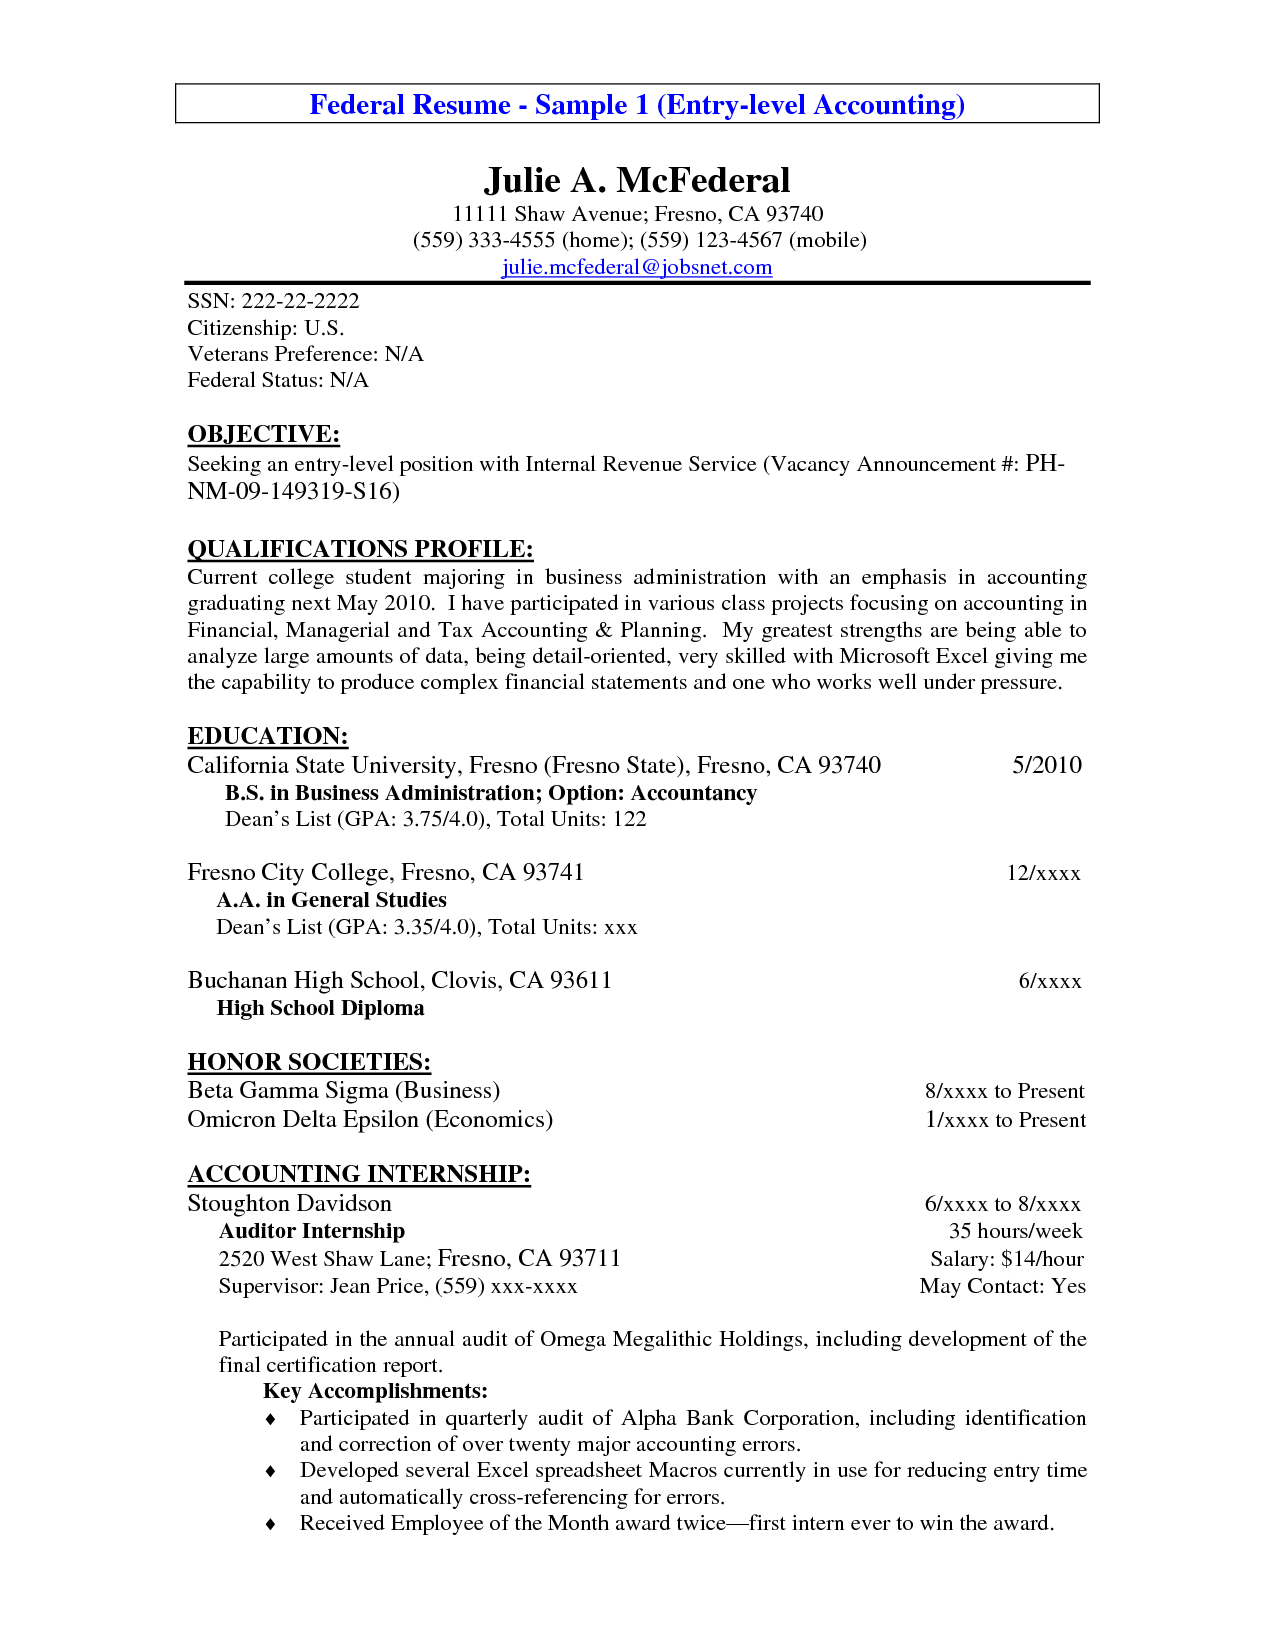 Samples Of Resume Objectives Accounting Resume Objectives Read More  Httpwww